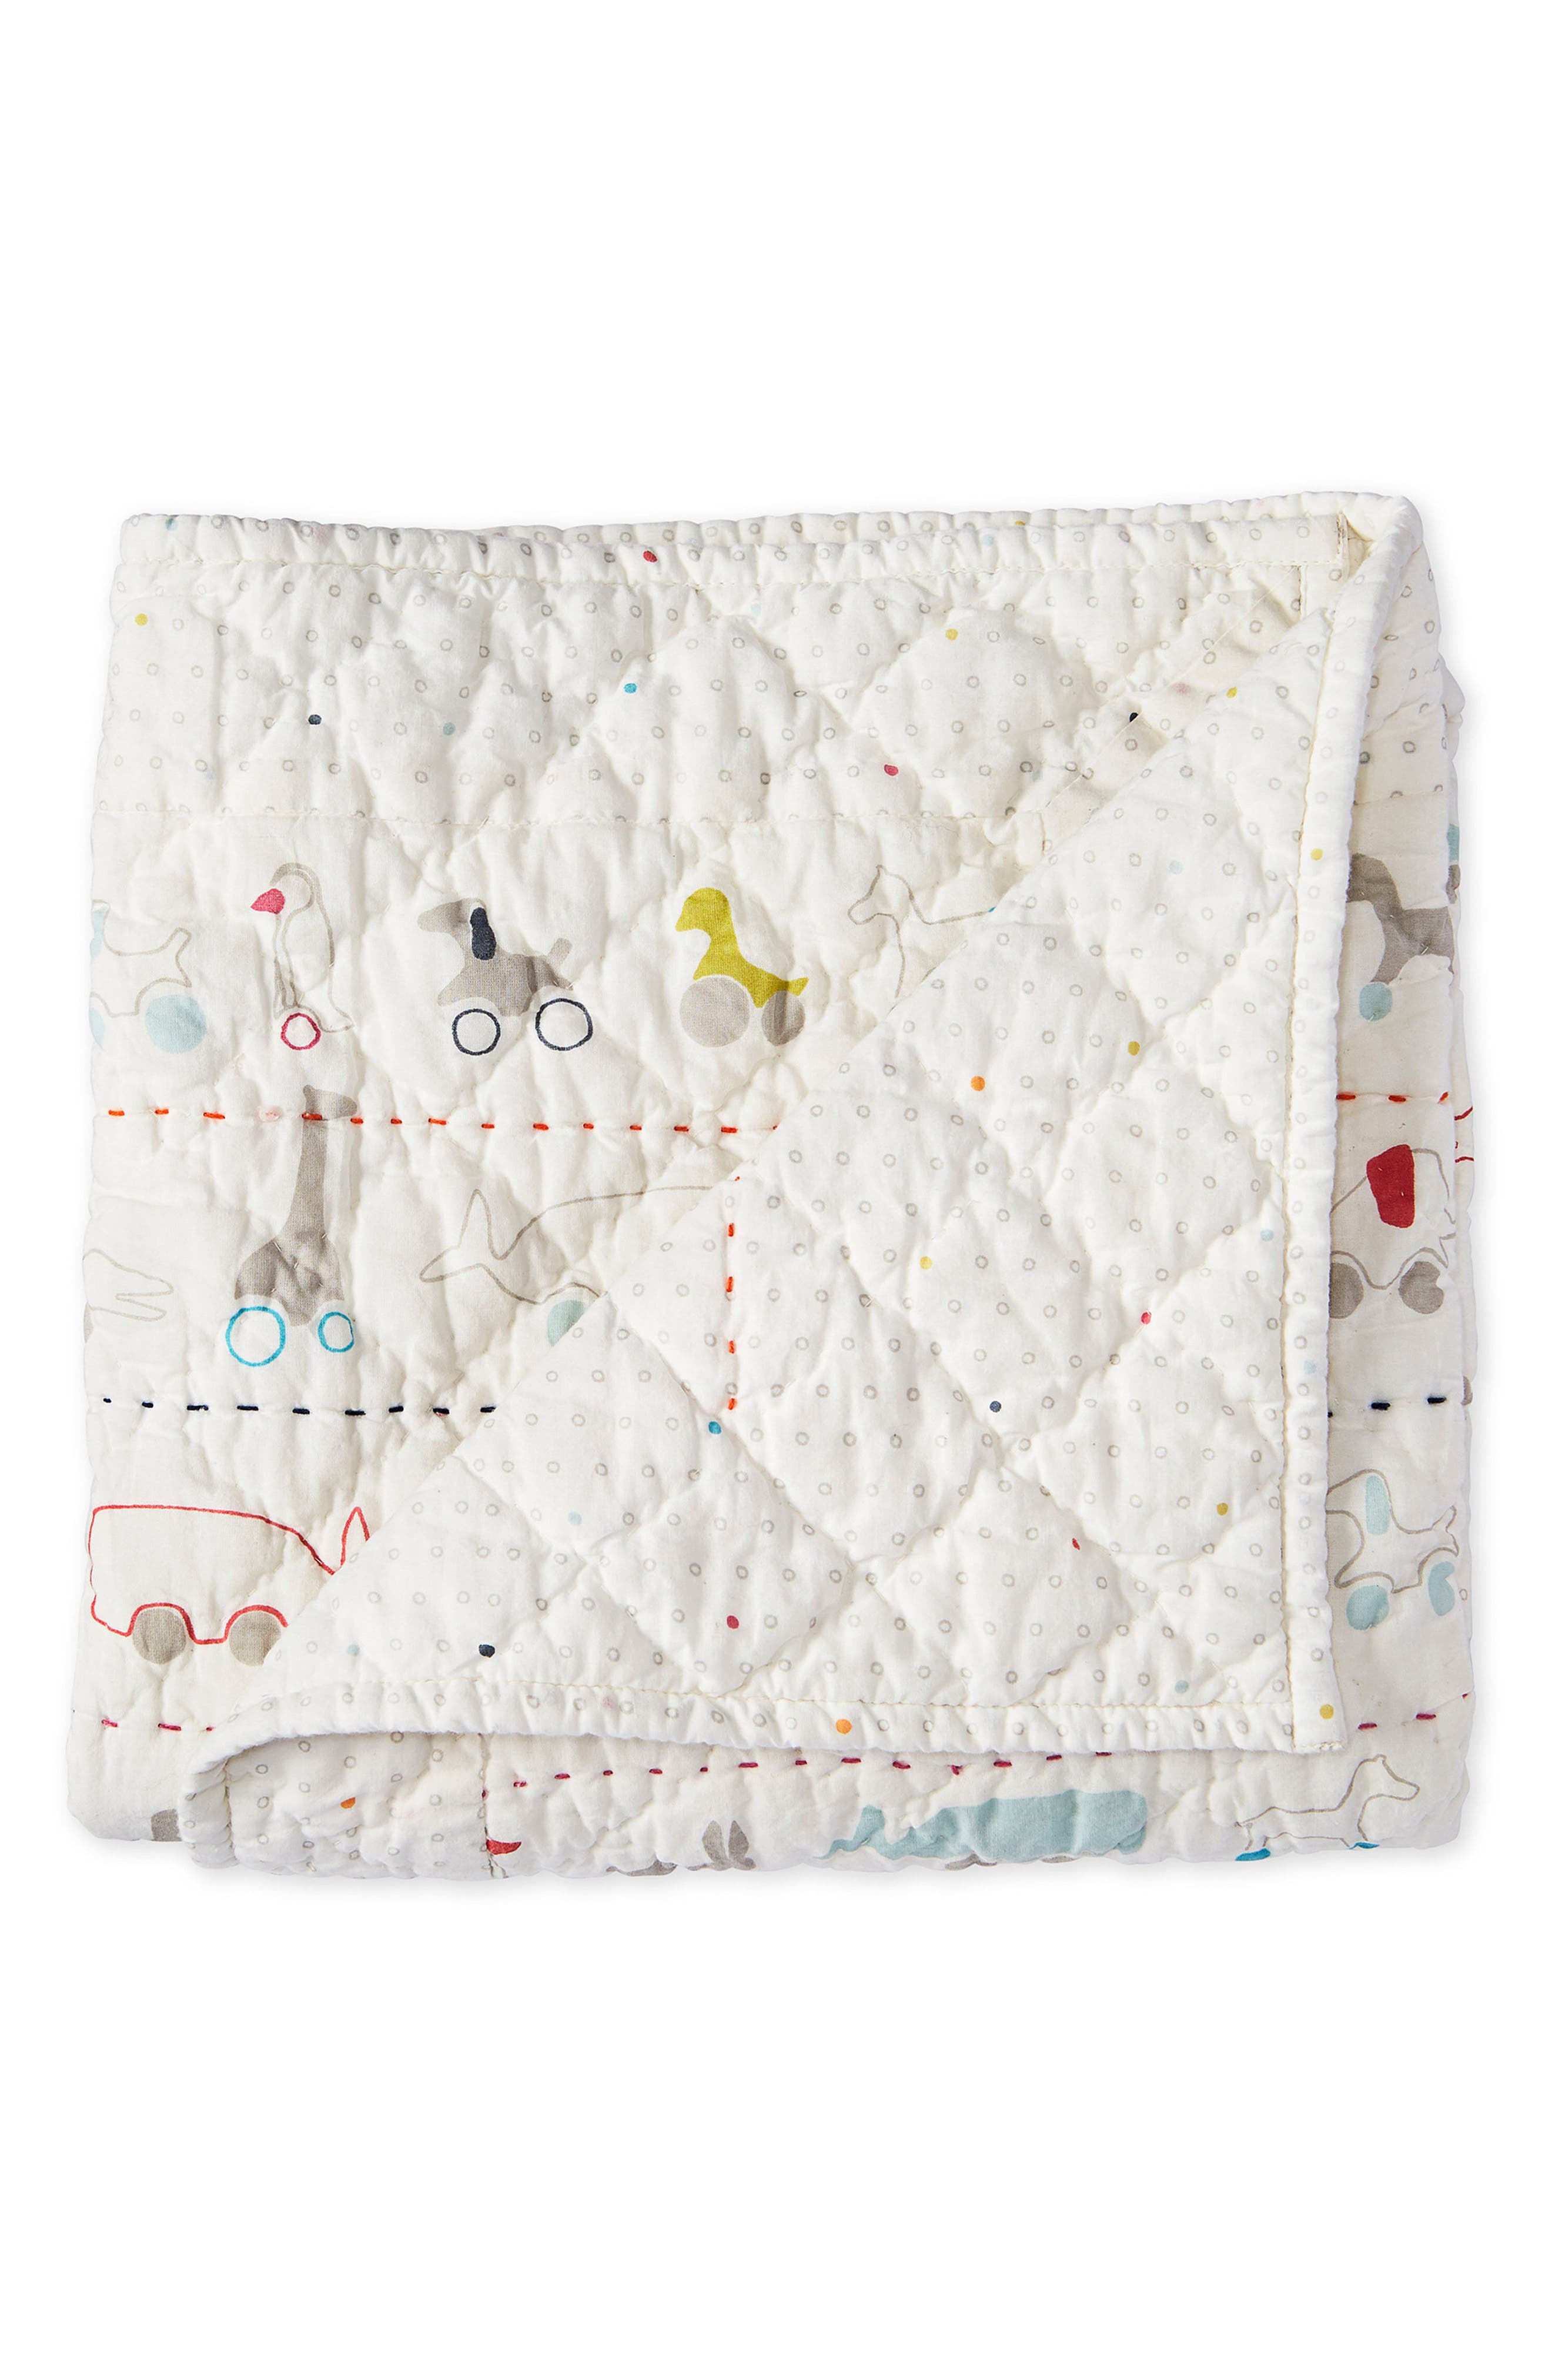 PEHR,                             Pull Toys Print Quilted Blanket,                             Alternate thumbnail 2, color,                             MULTI